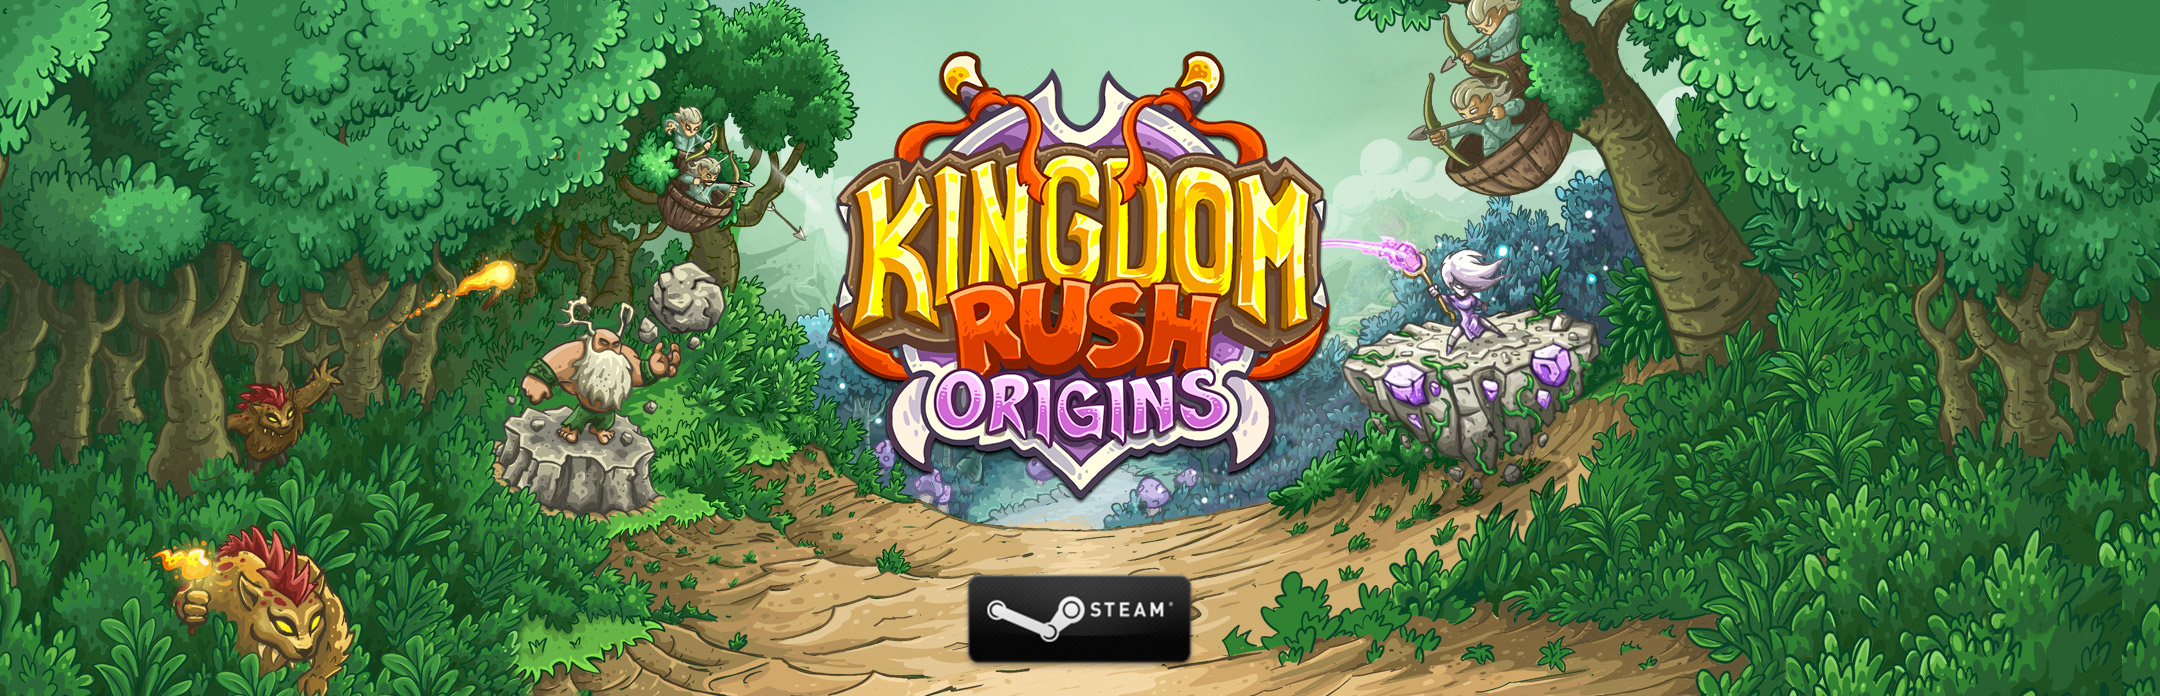 KINGDOM RUSH ORIGINS ON STEAM - Ironhide Game Studio